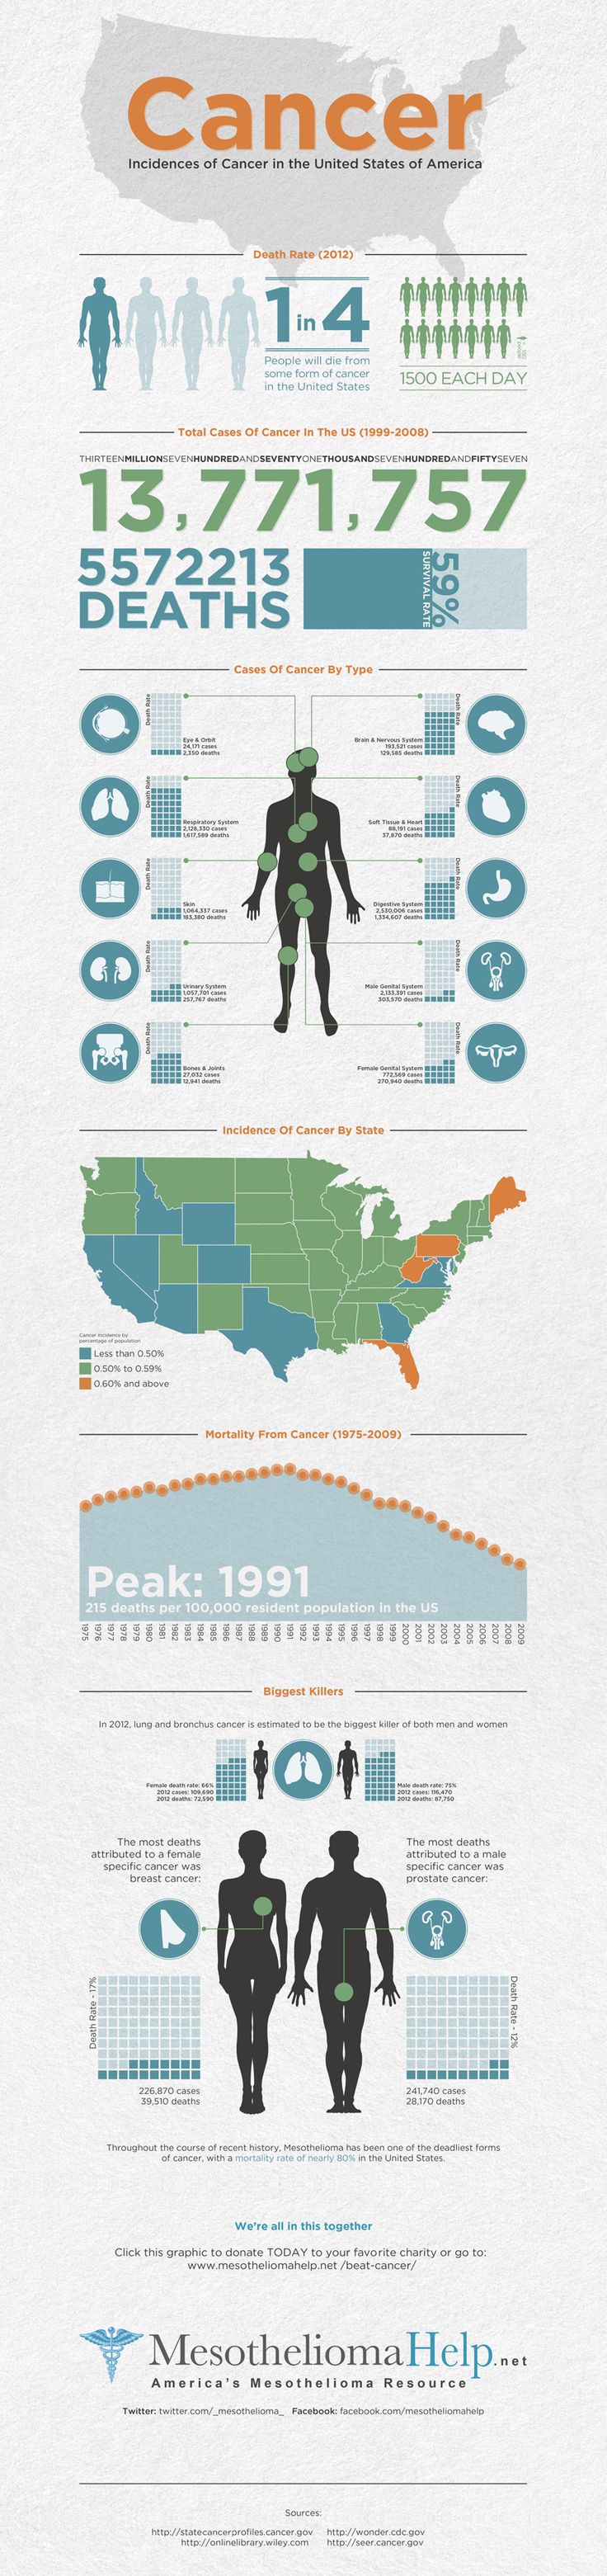 #Healthcare - Cancer - Incidences of Cancer in the United States #Infographic